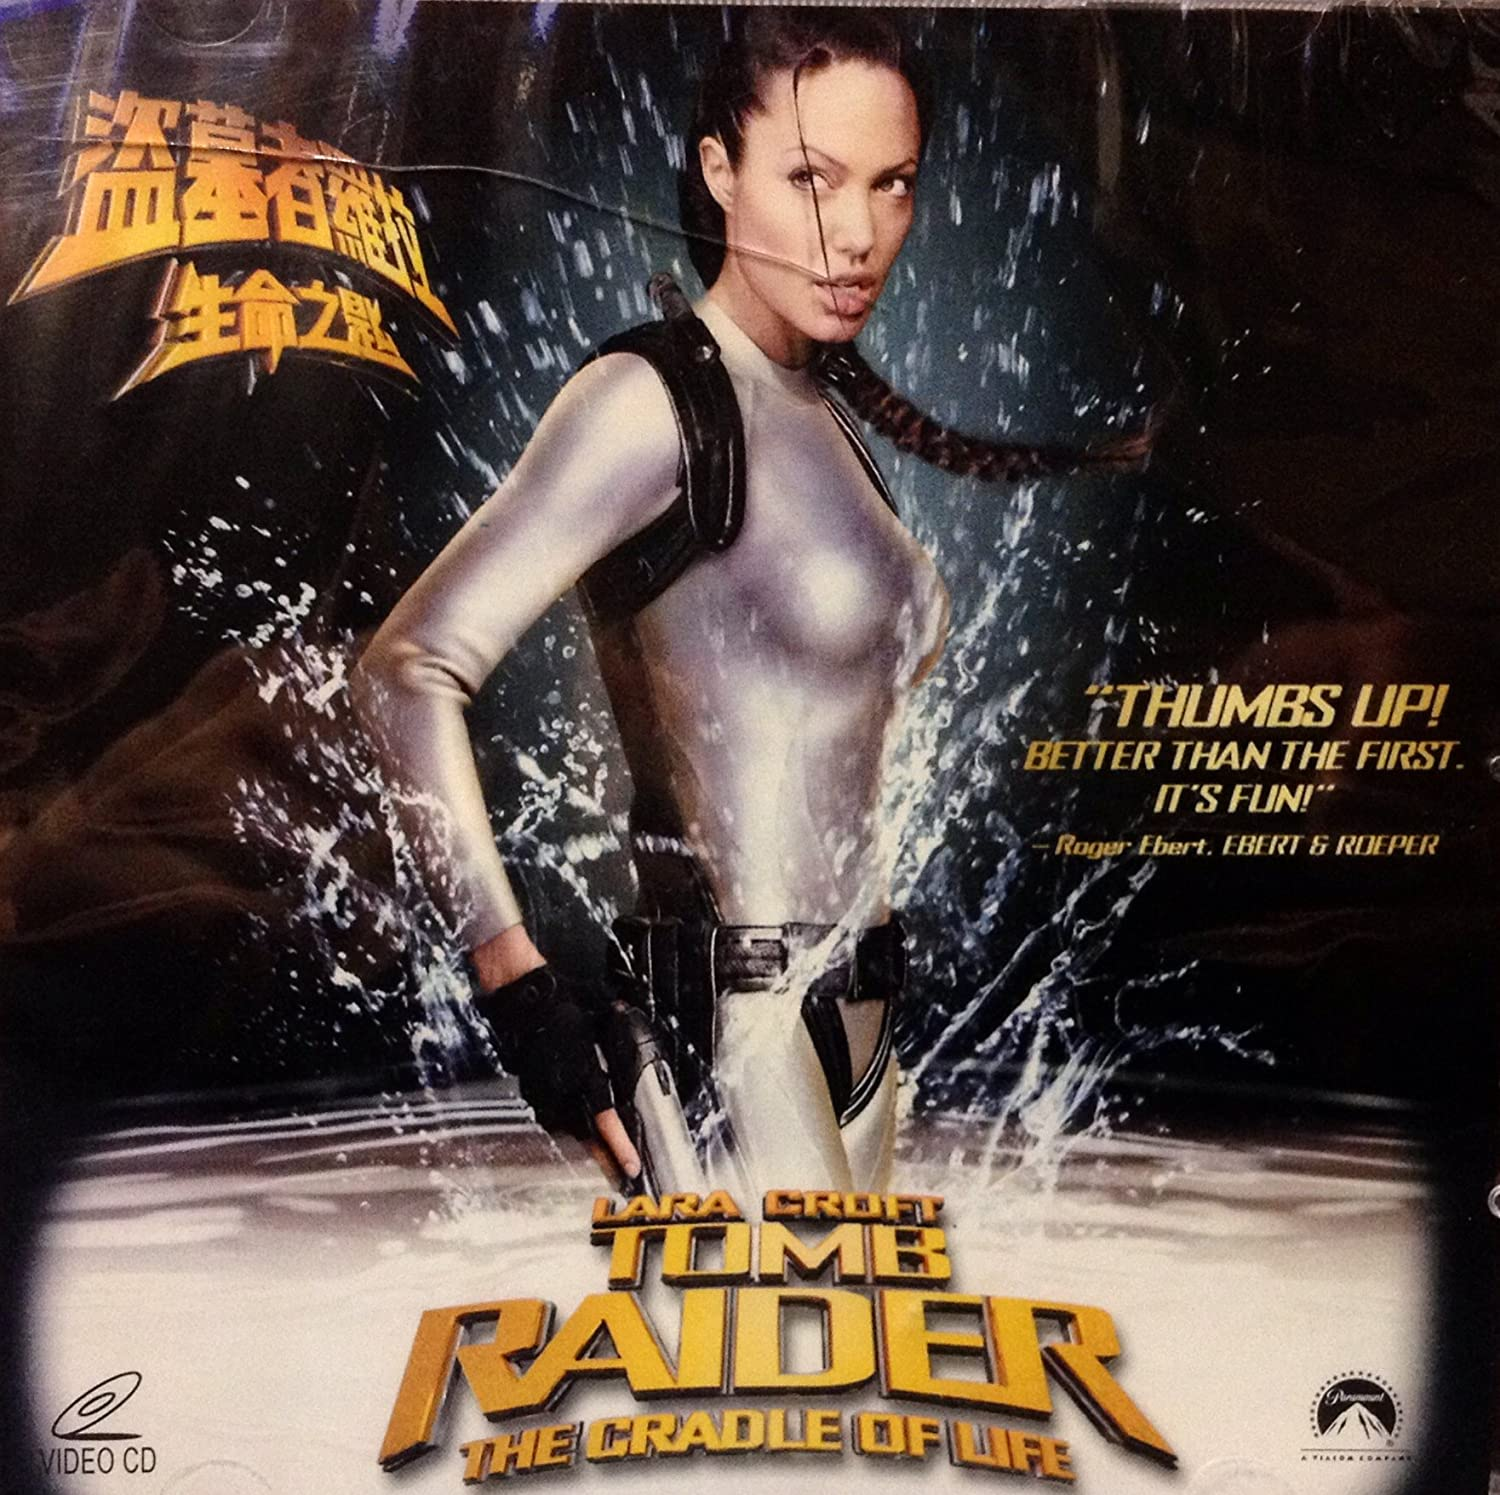 Amazon Com Lara Croft Tomb Raider The Cradle Of Life 2003 By Deltamac Version Vcd In English W Chinese Subtitles Imported From Hong Kong Angelina Jolie Gerard Butler Chris Barrie Jan De Bont Movies